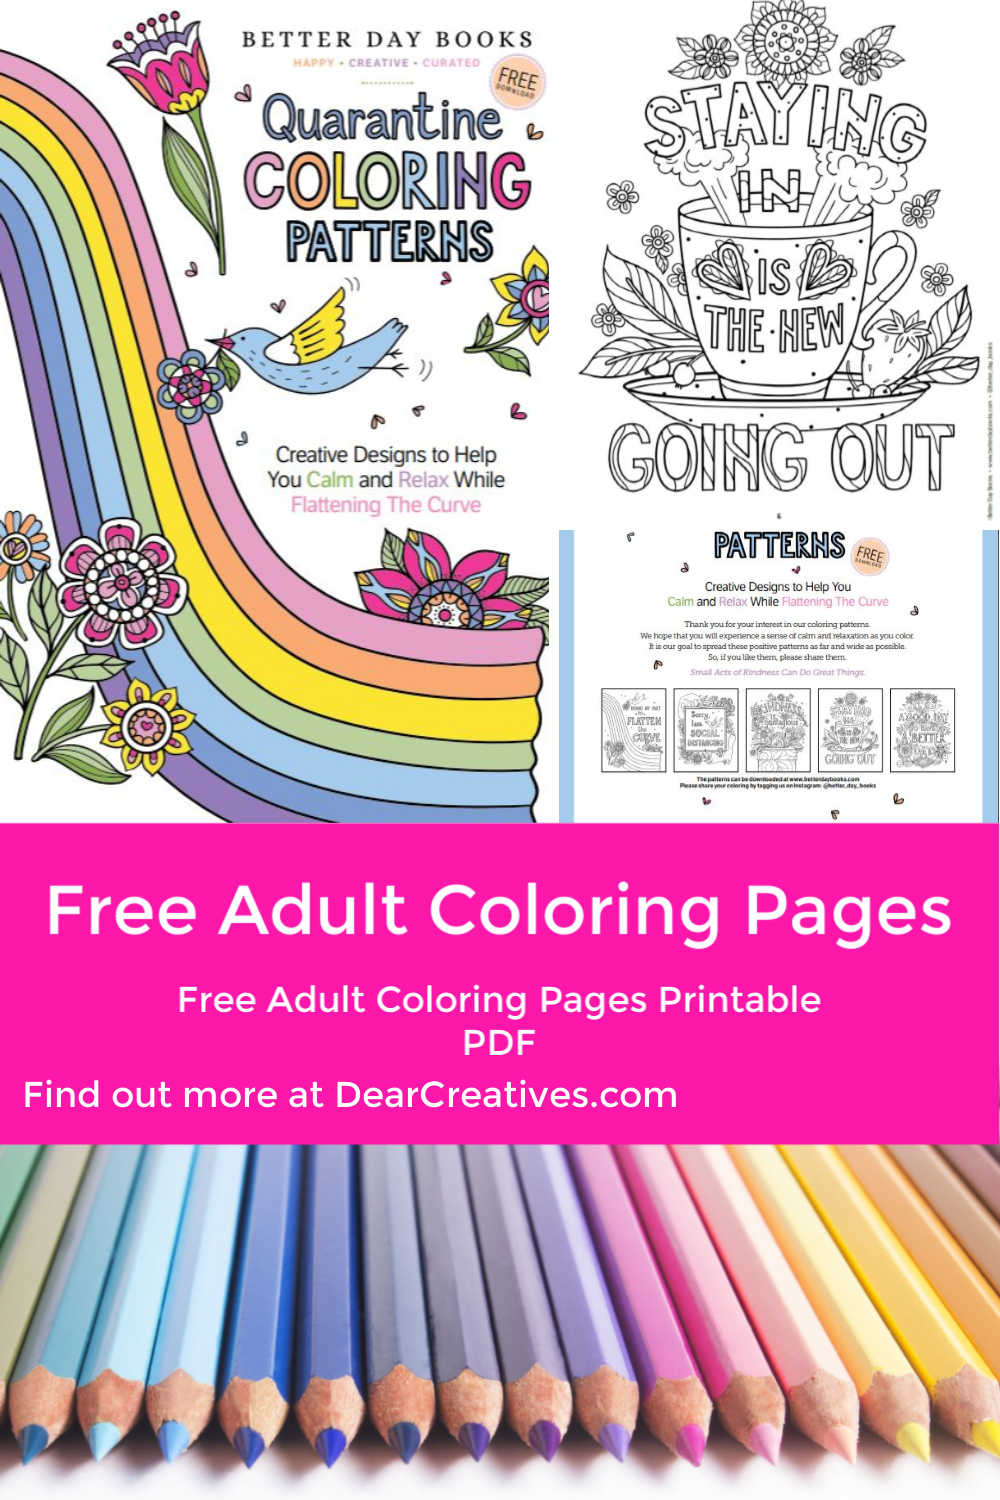 Free Adult Coloring Pages – Creative Designs